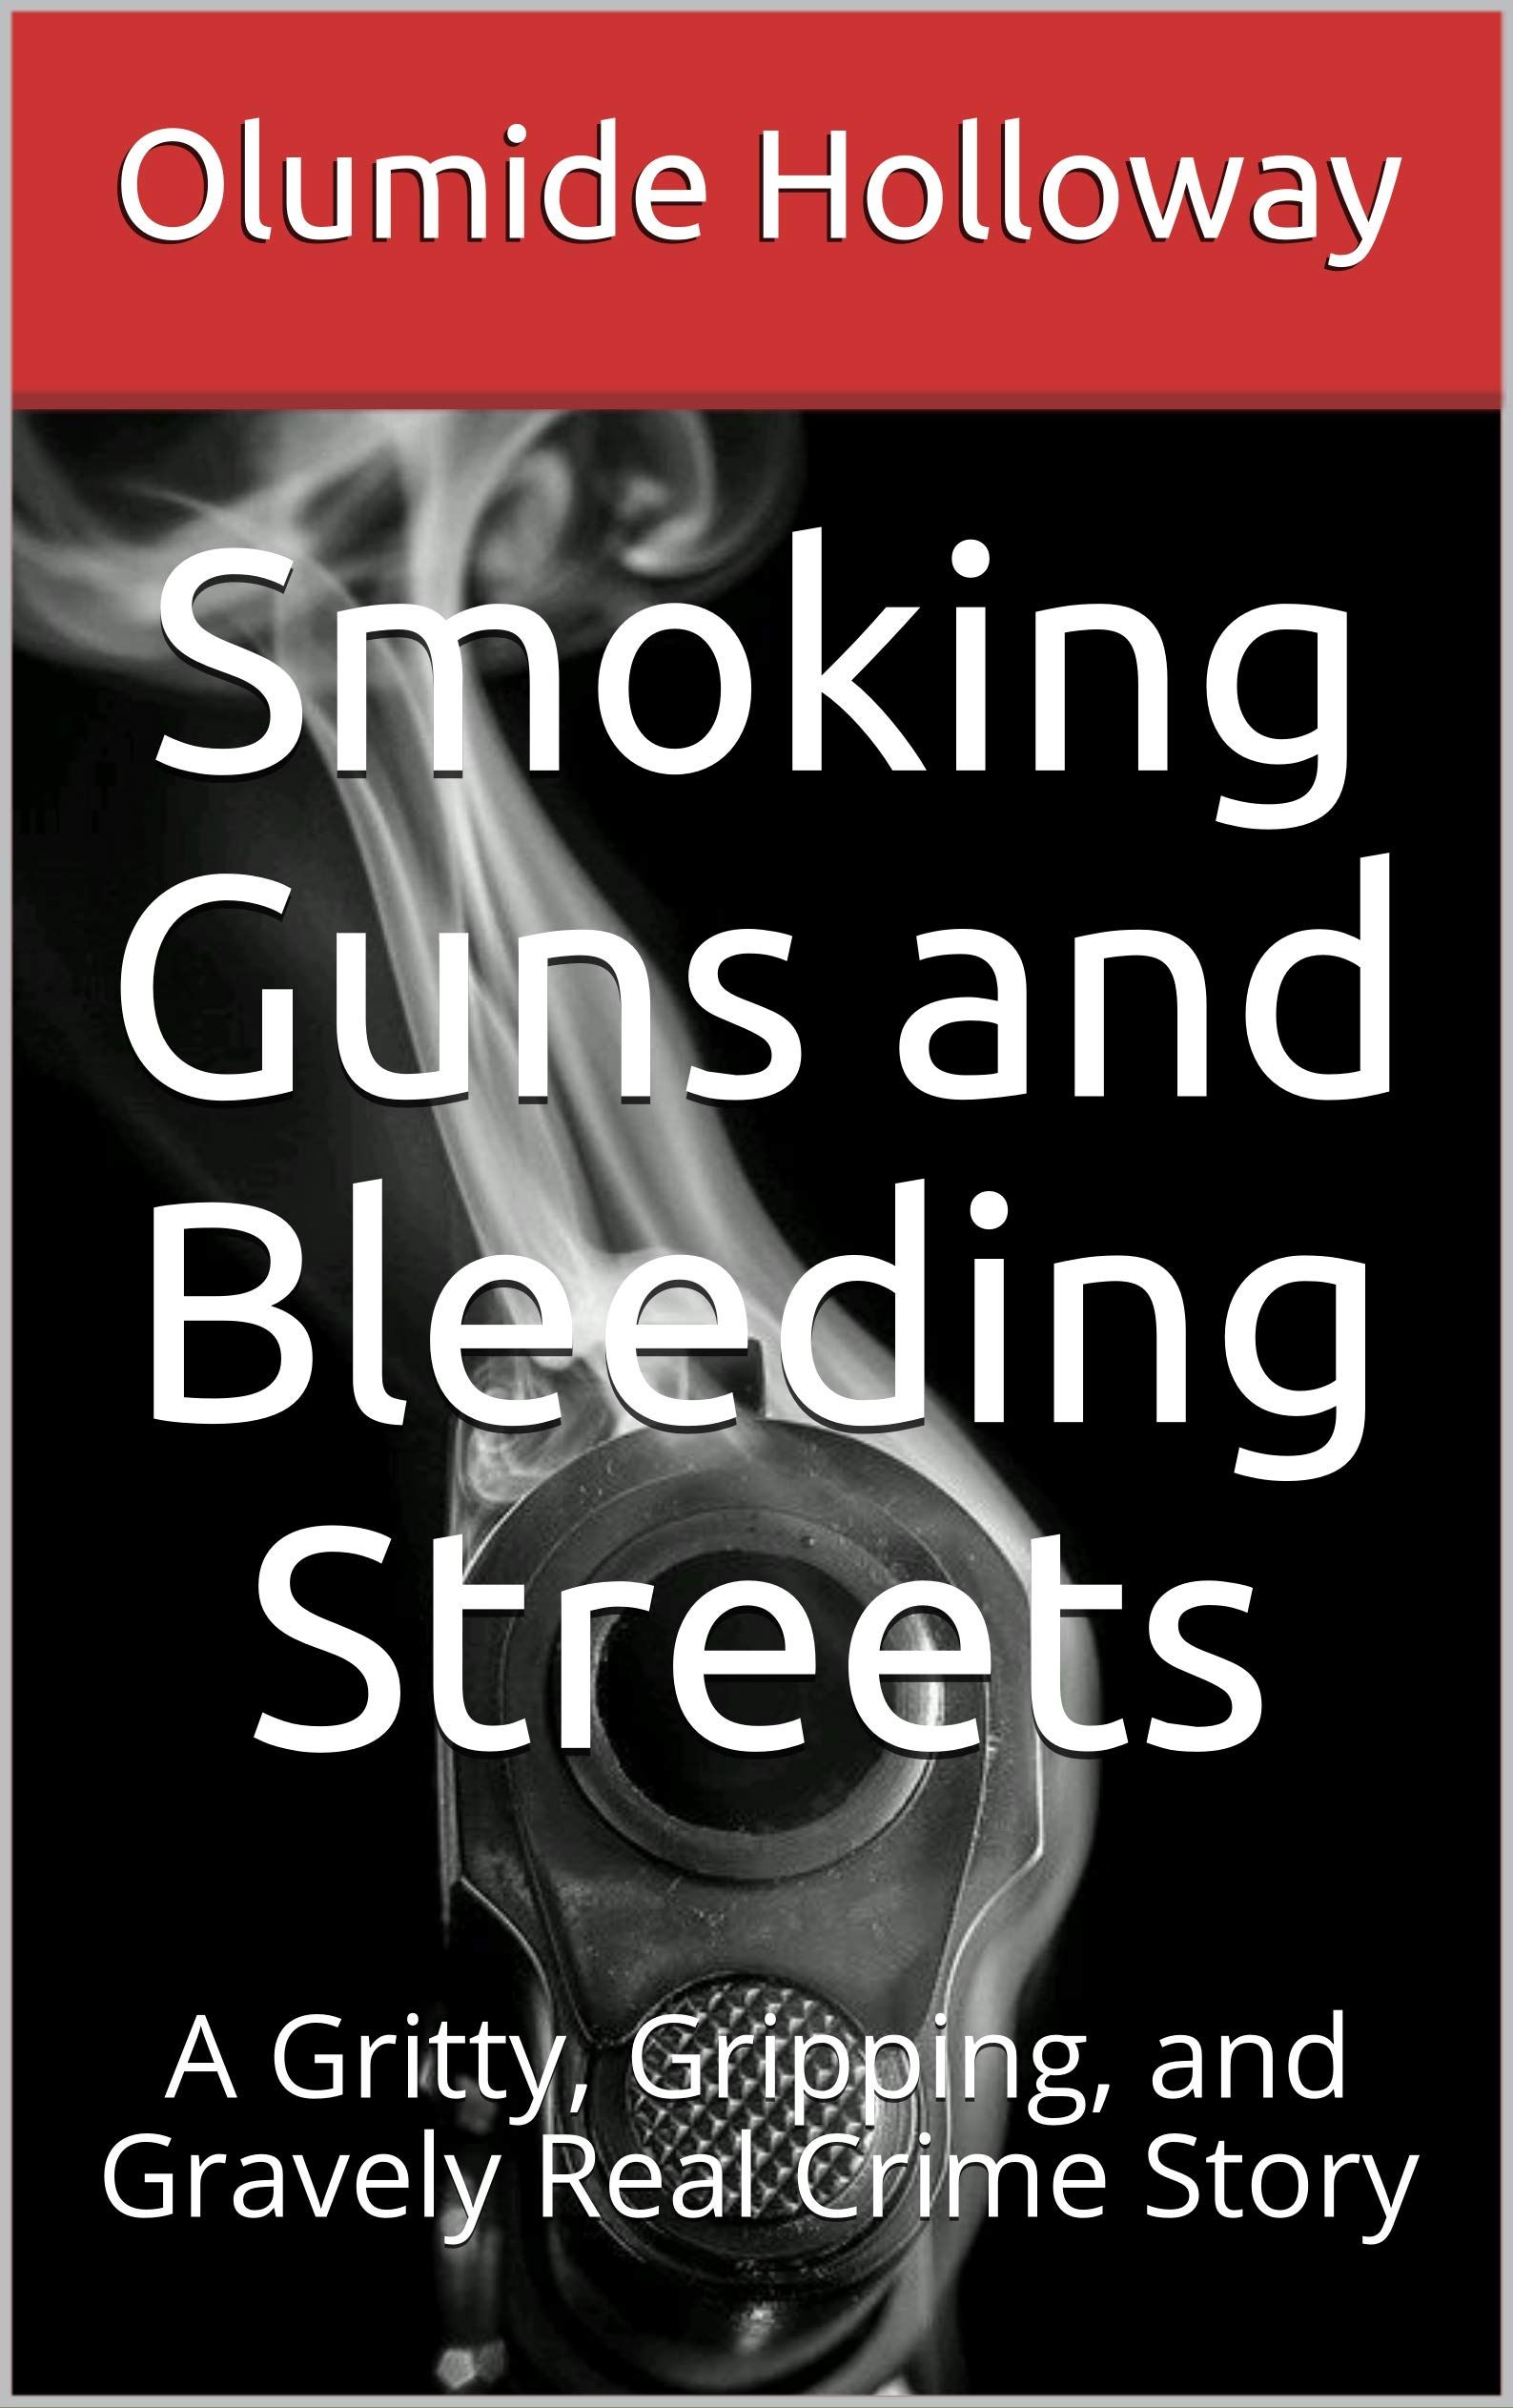 Smoking Guns and Bleeding Streets: A Gritty, Gripping, and Gravely Real Crime Story